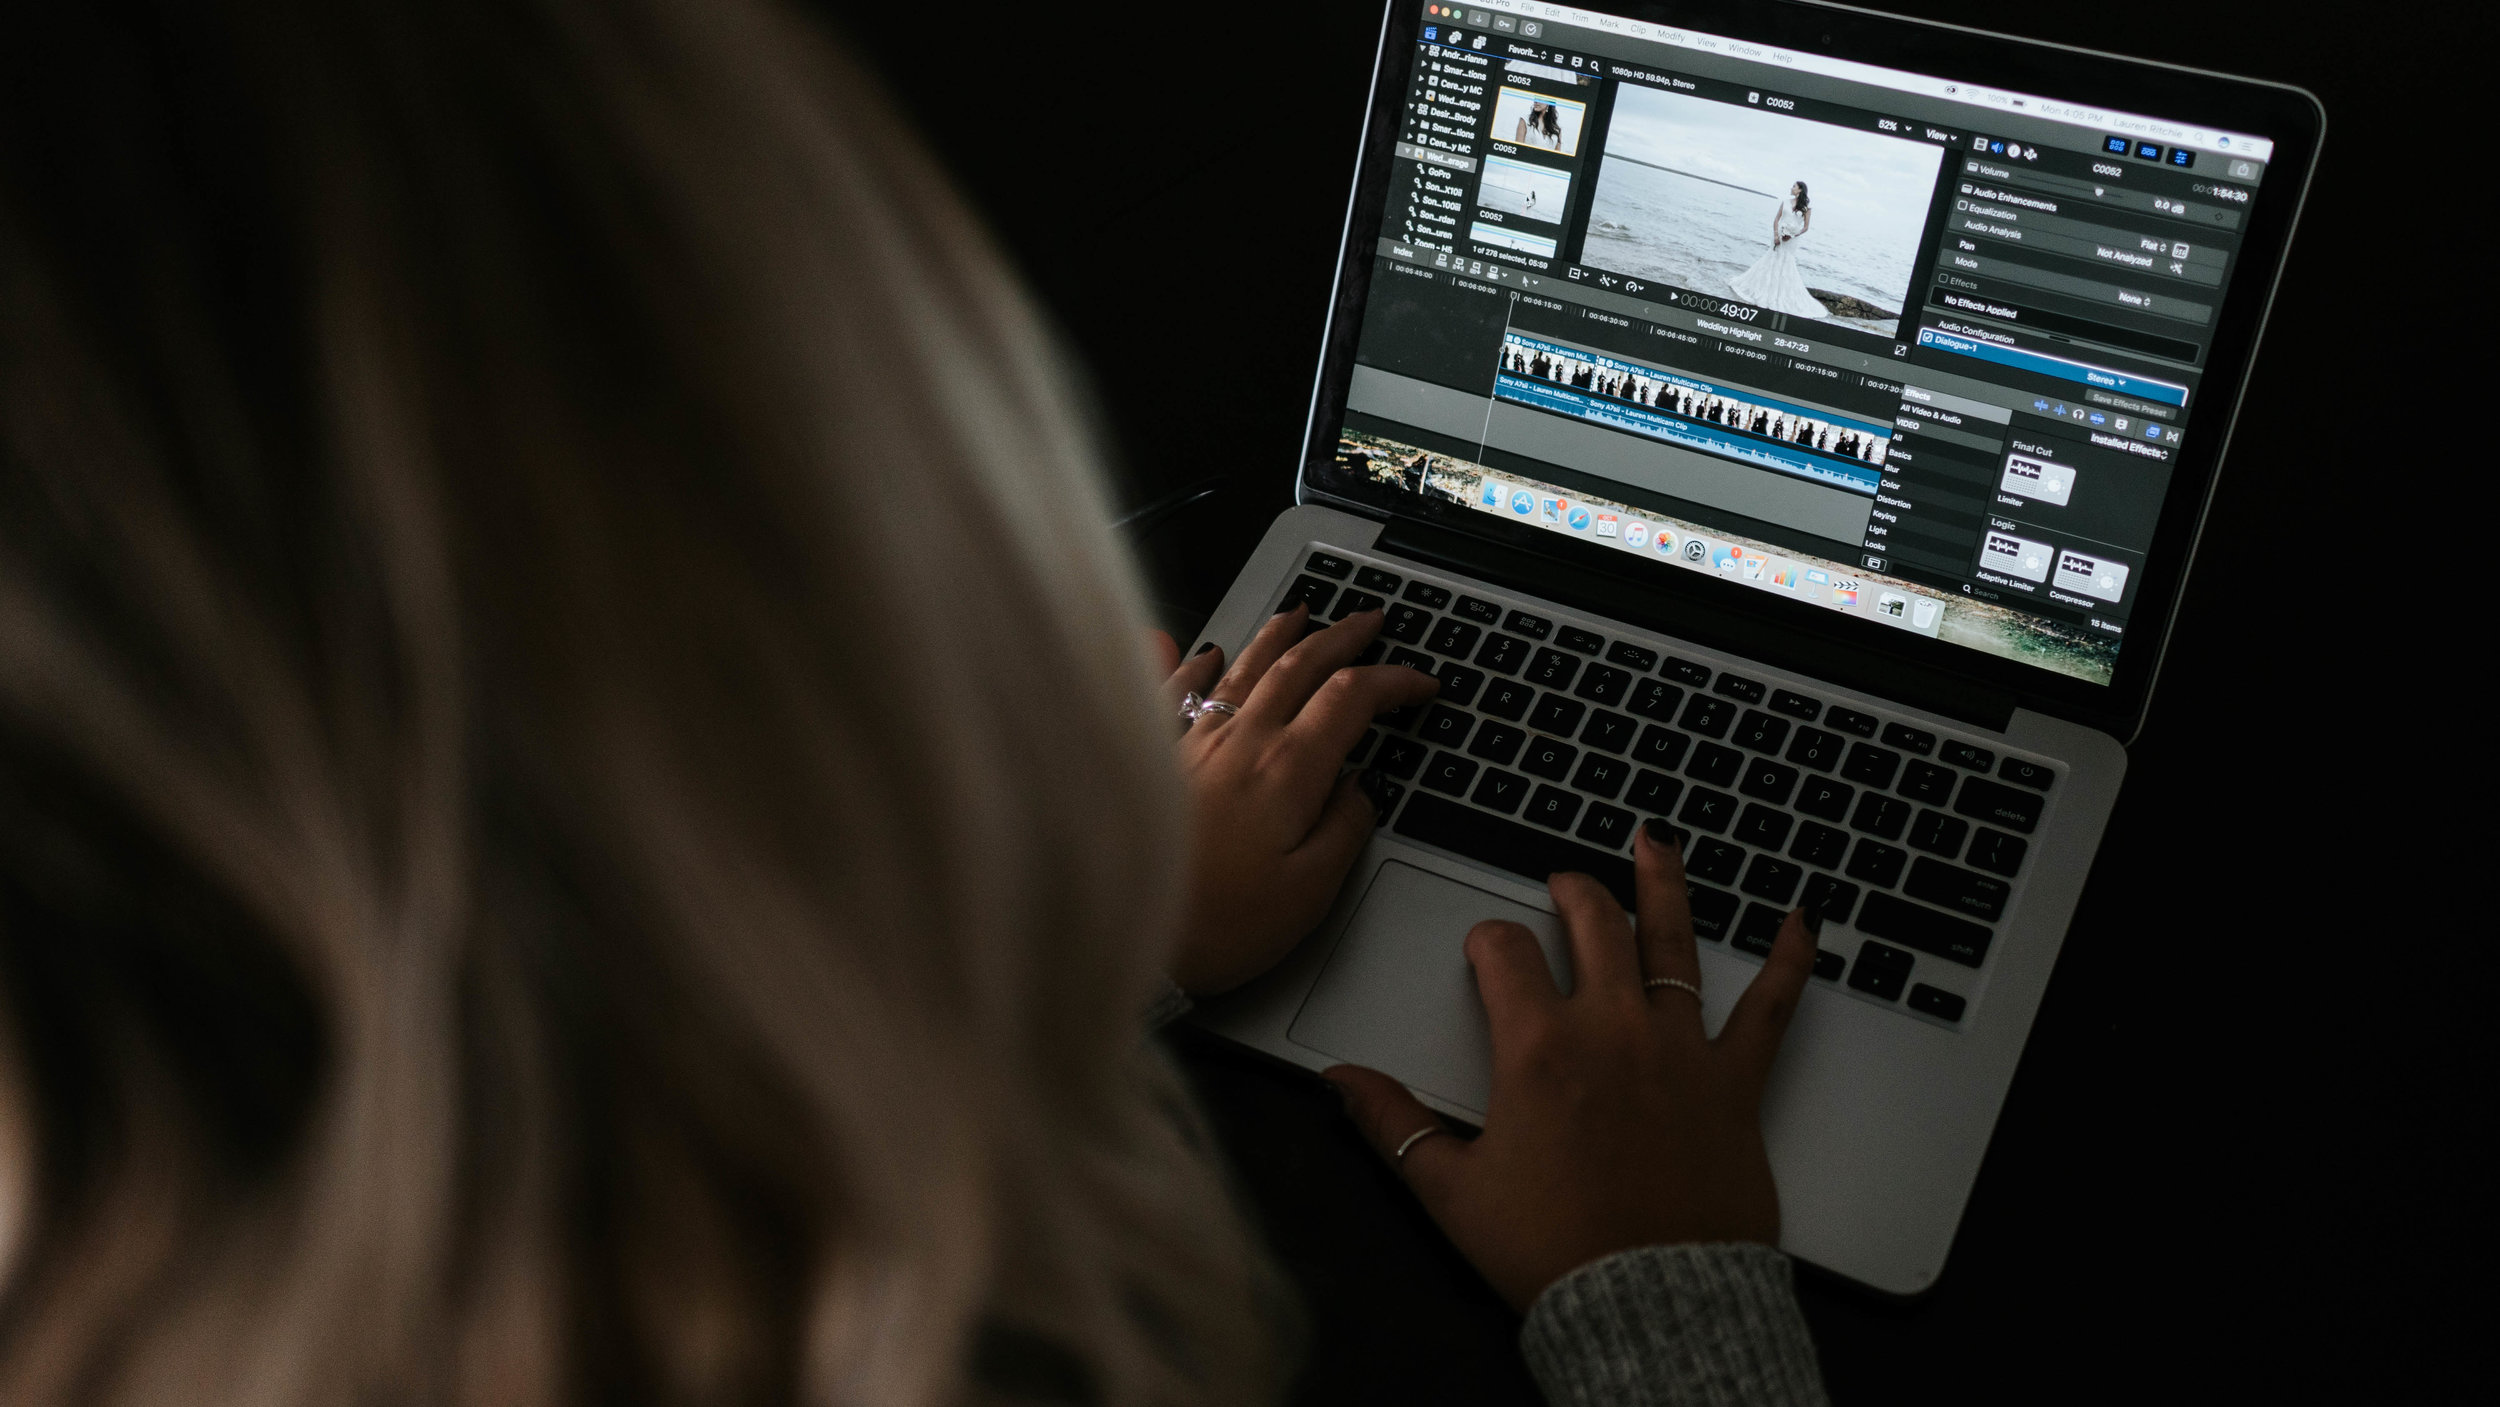 Lauren from Prairie Film Co. editing video on her MacBook Pro in Final Cut Pro X.